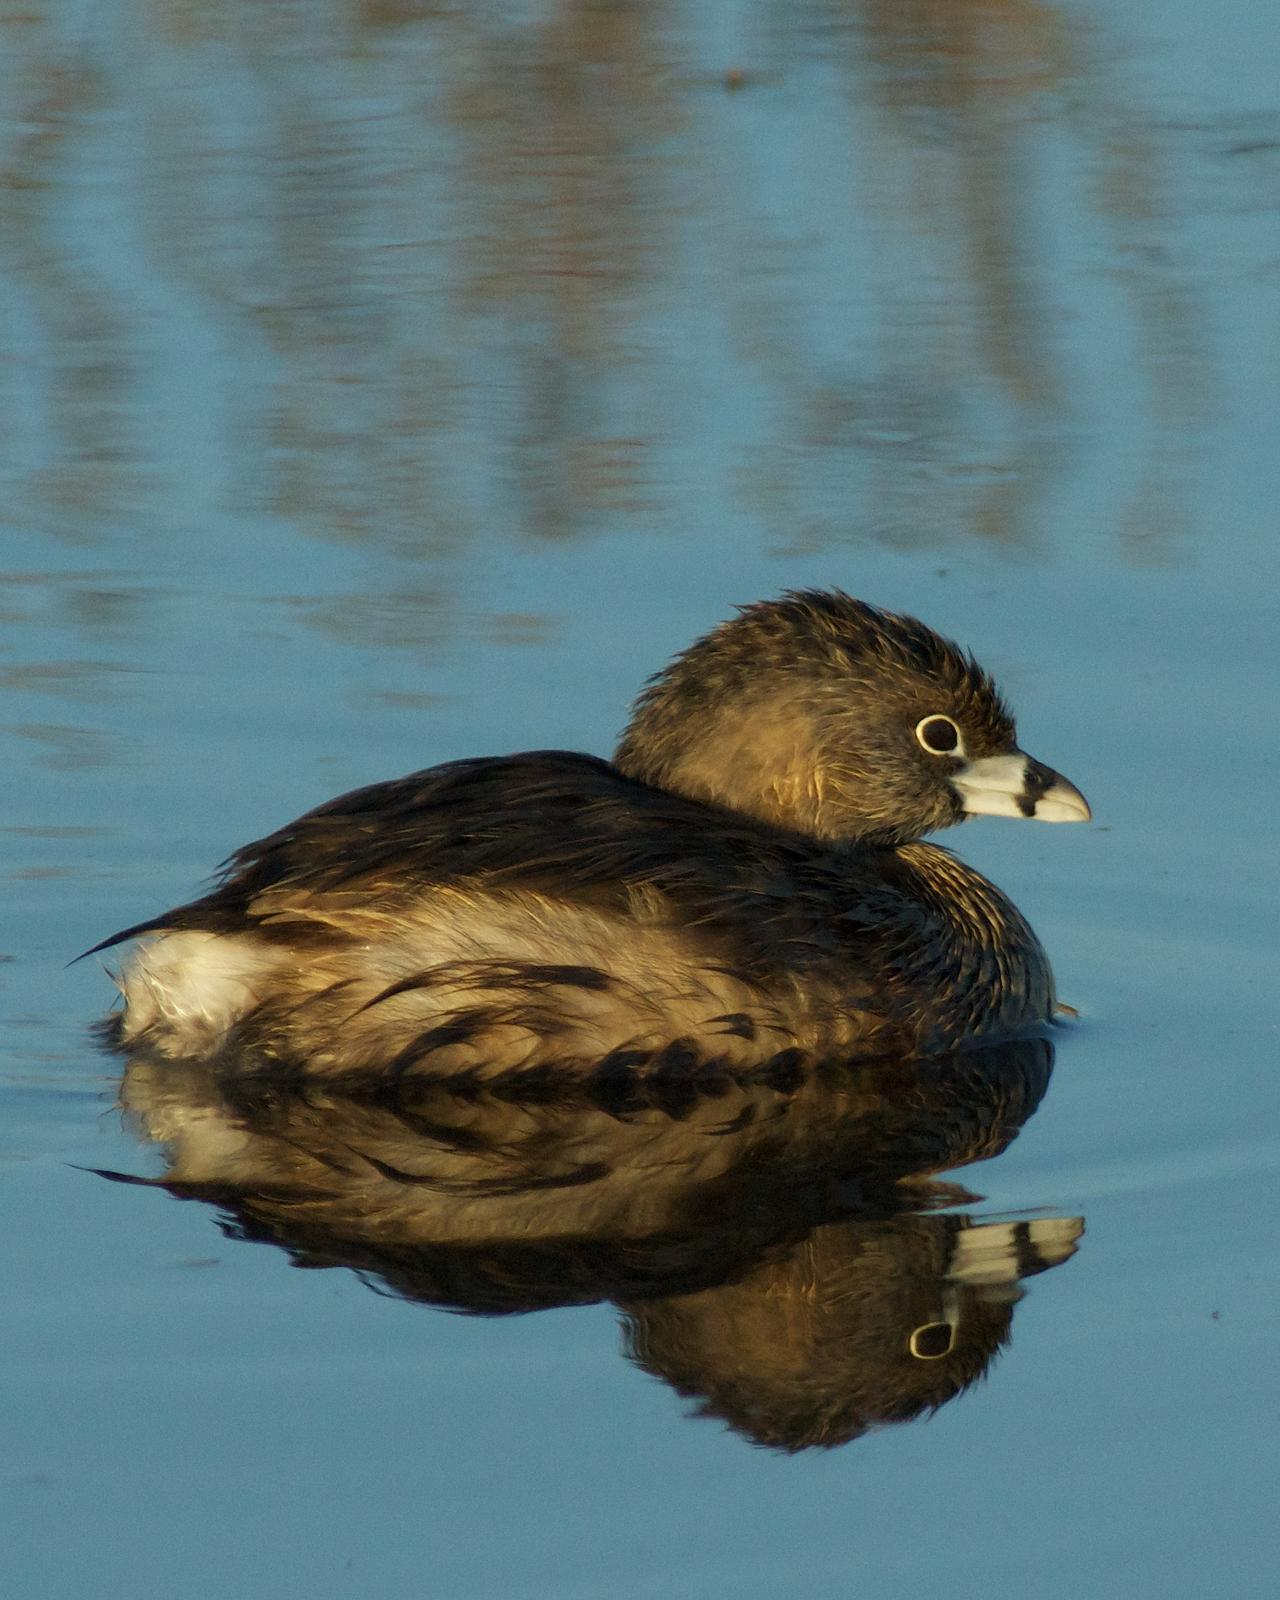 Pied-billed Grebe Photo by Gerald Hoekstra